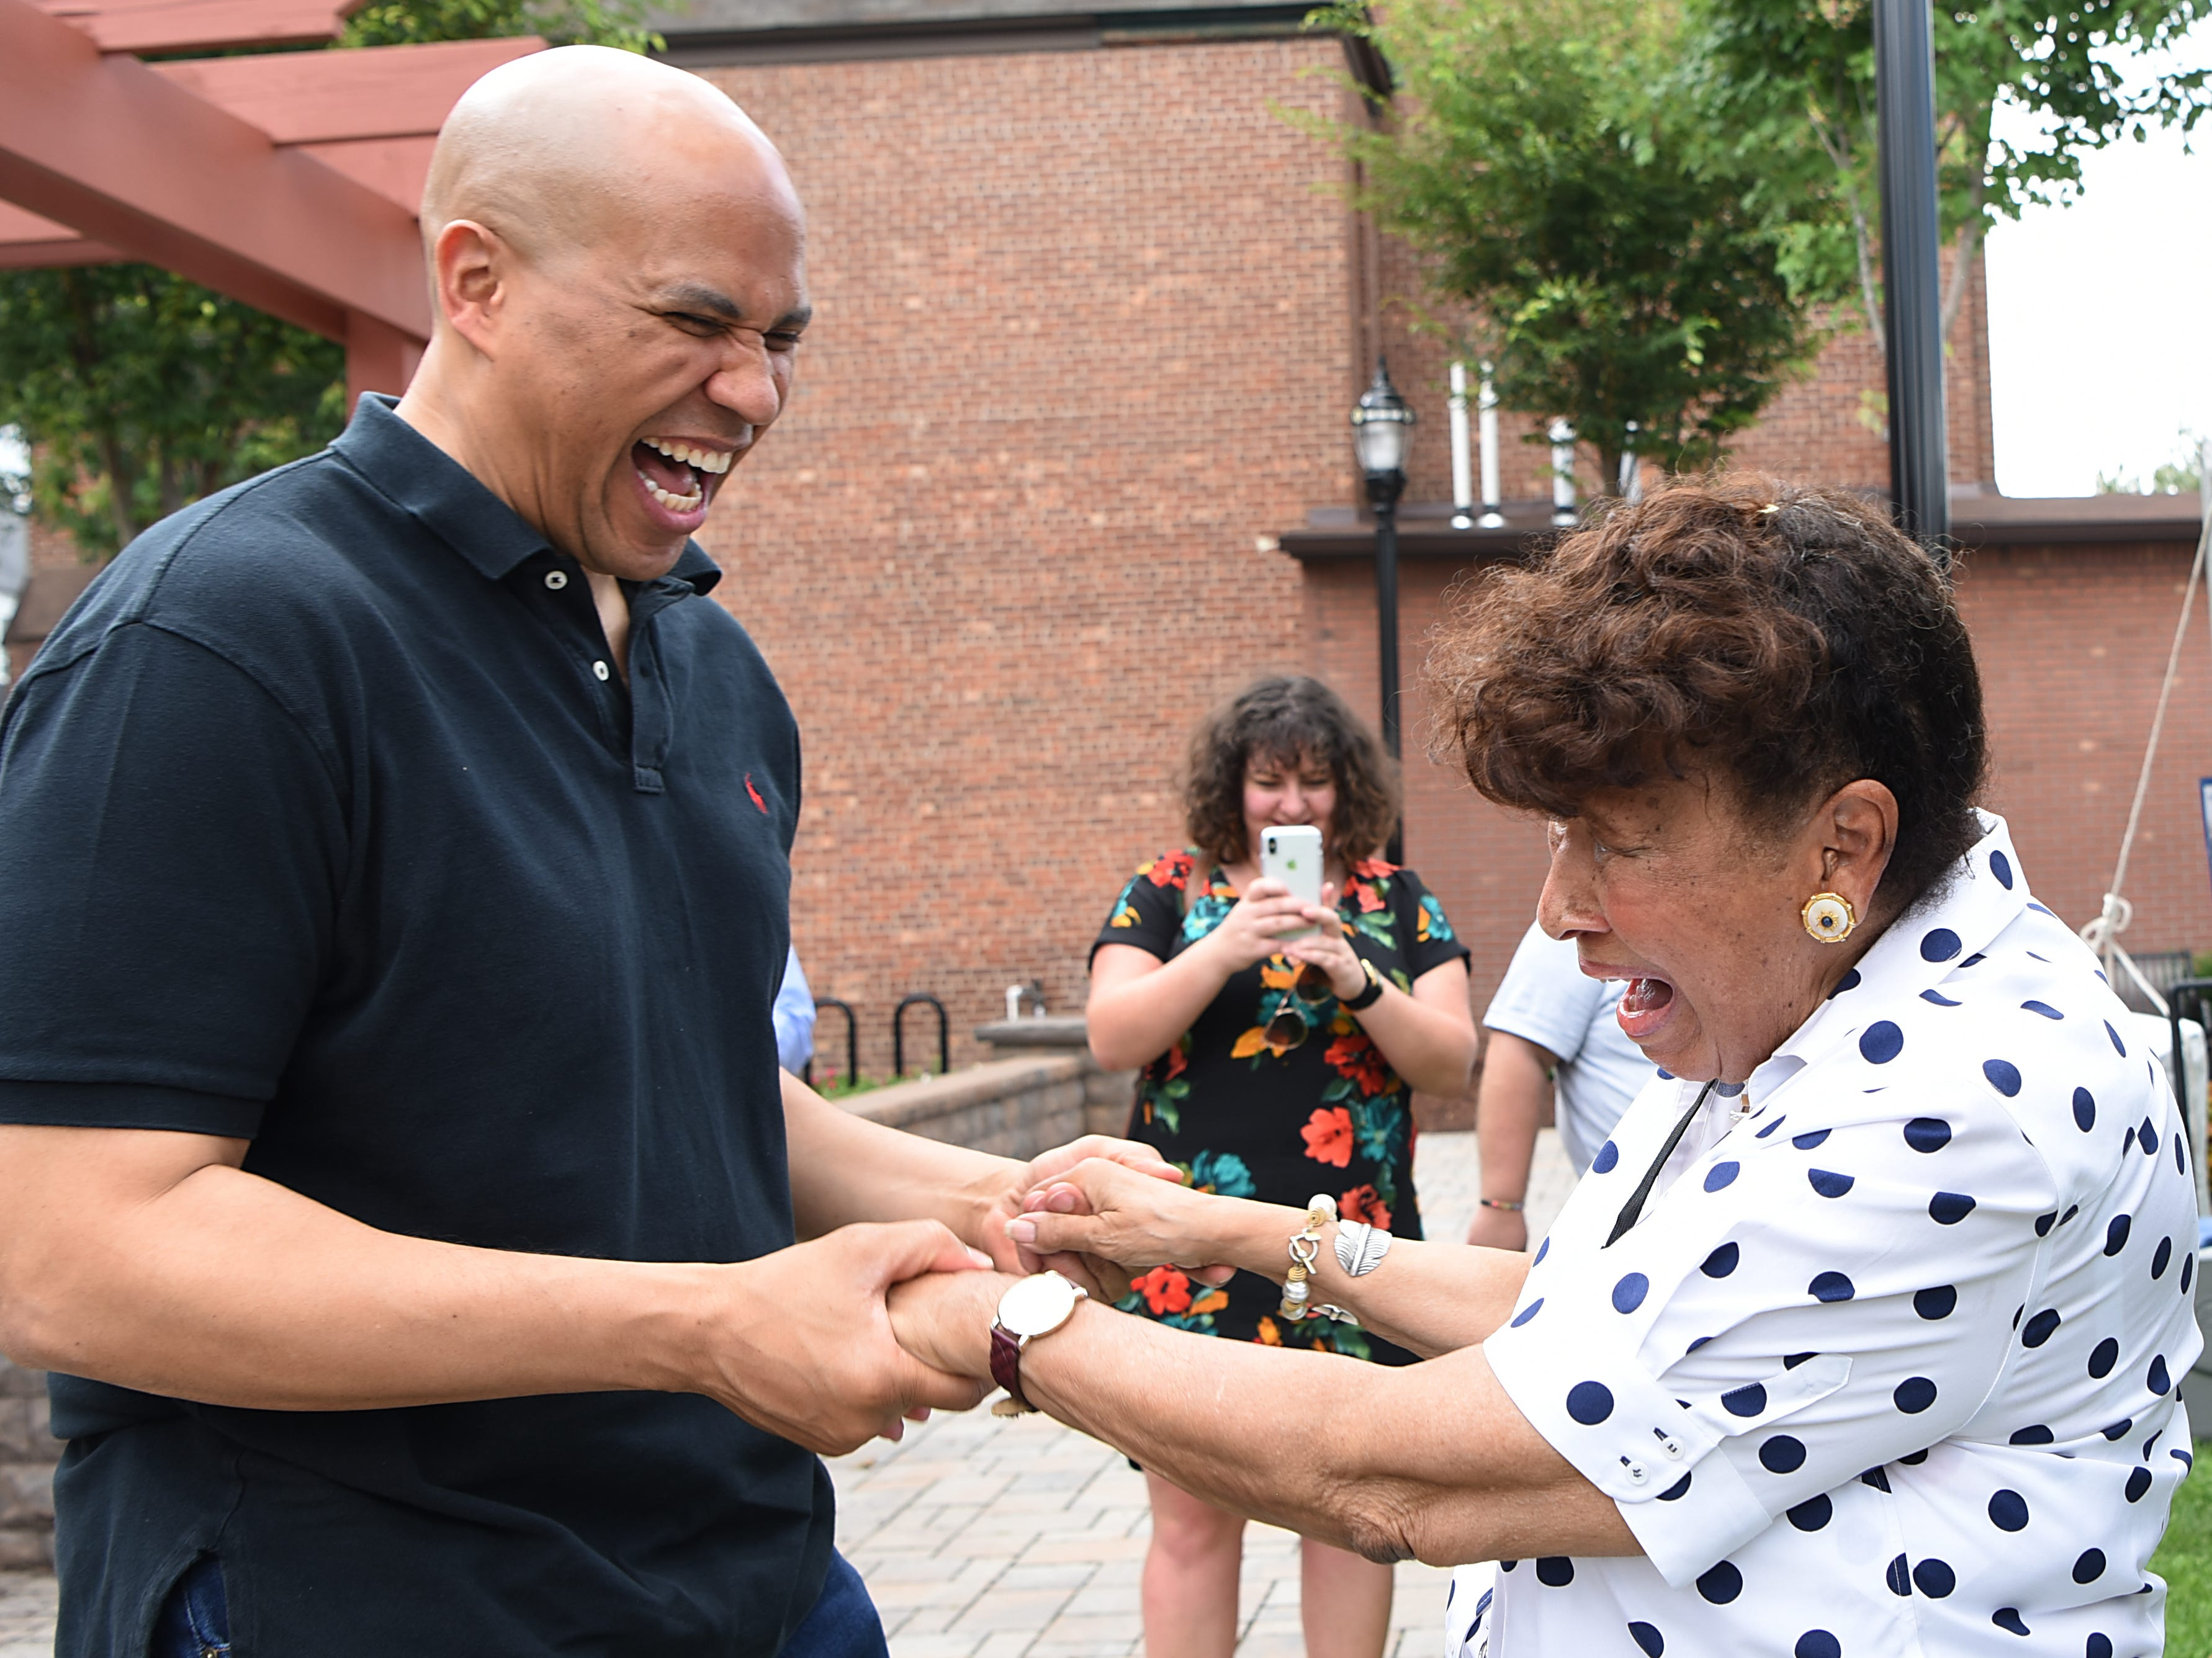 Senator Cory Booker greets Lee Porter during the Fair Housing Council of Northern New Jersey picnic in Hackensack on Friday August 10, 2018.